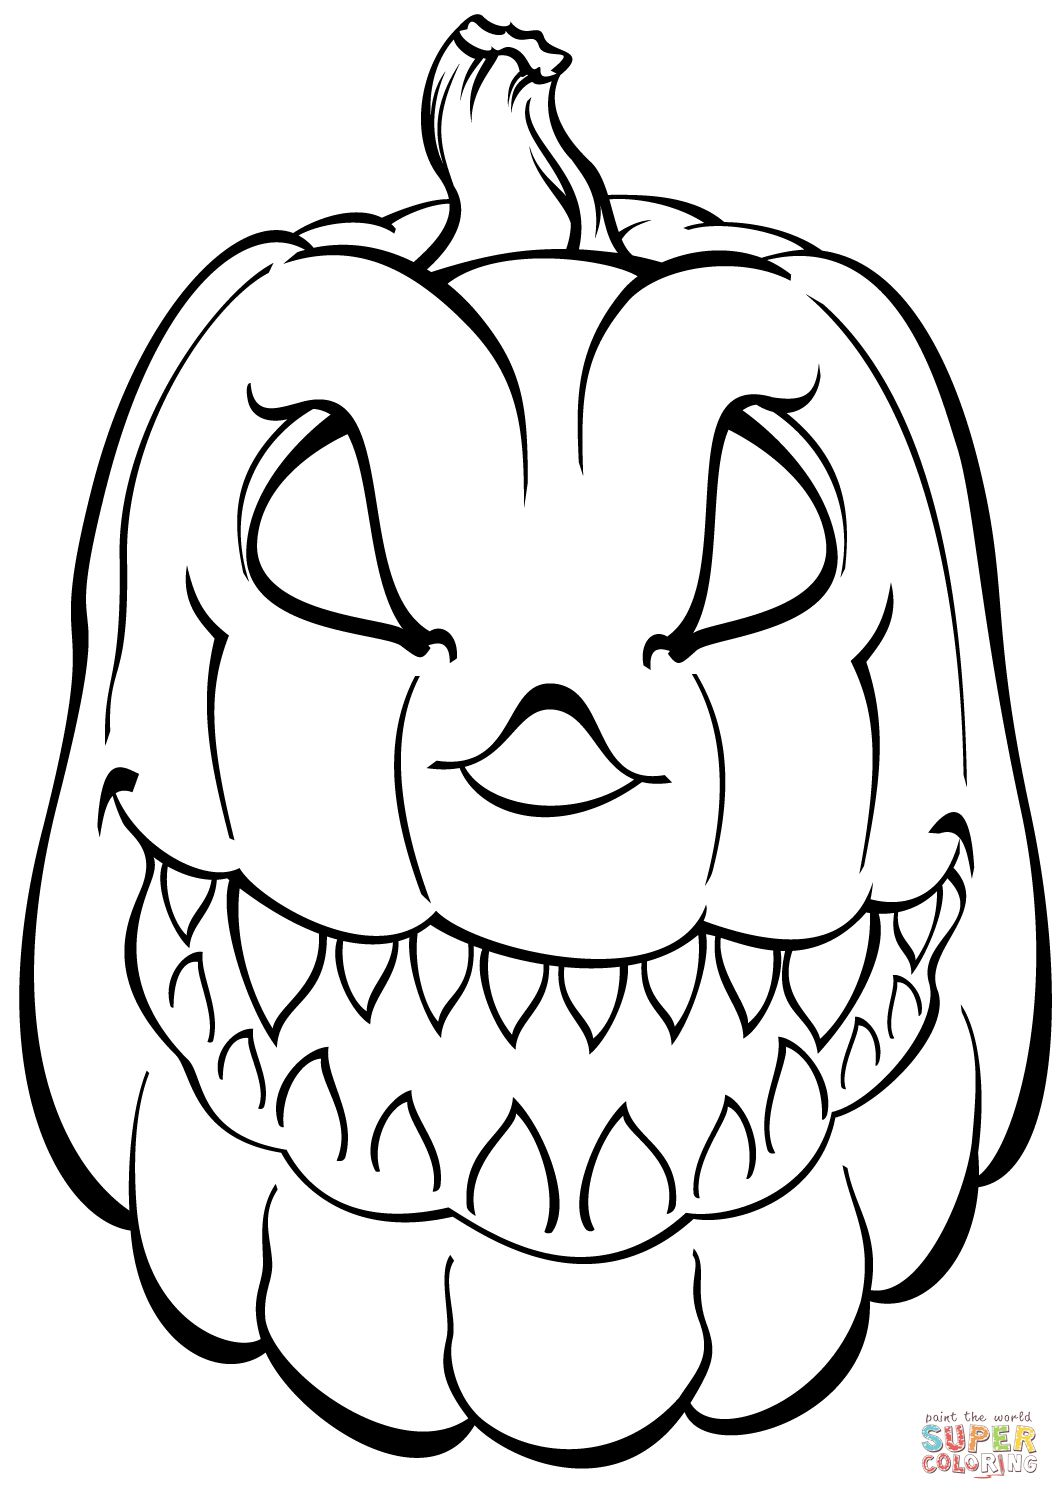 Free Printable Pumpkin Coloring Pages Scary Pumpkin Coloring Page